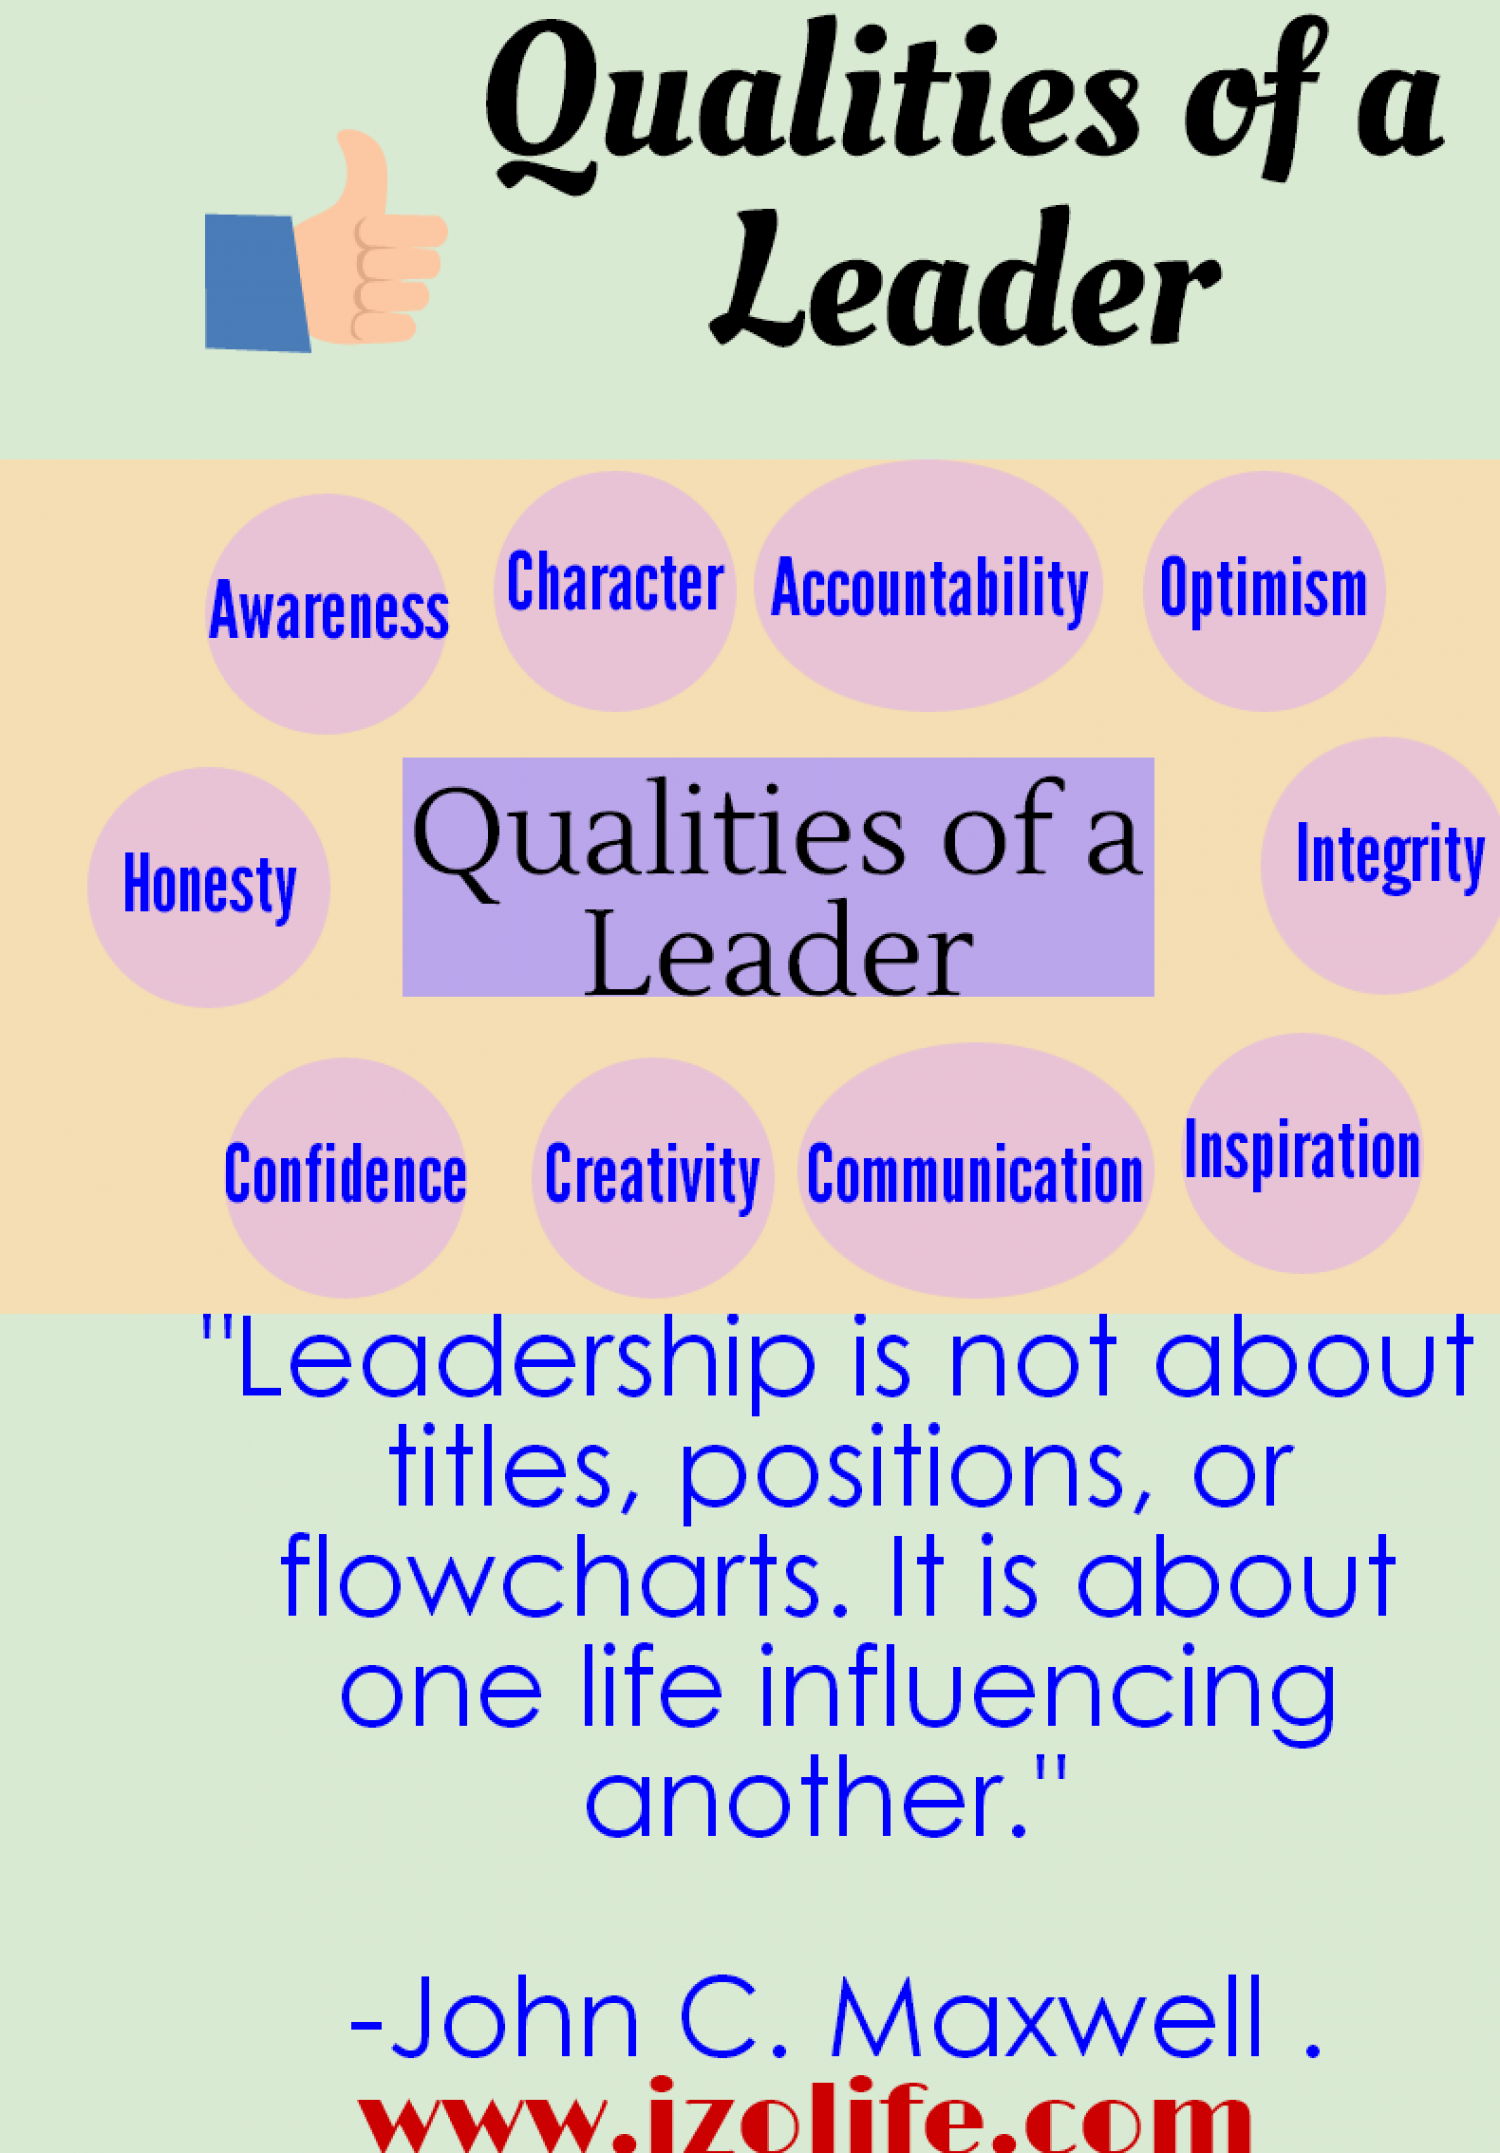 traits of a successful leader The trait theory of leadership focuses on identifying different personality traits and characteristics that are linked to successful leadership across a variety of situations.